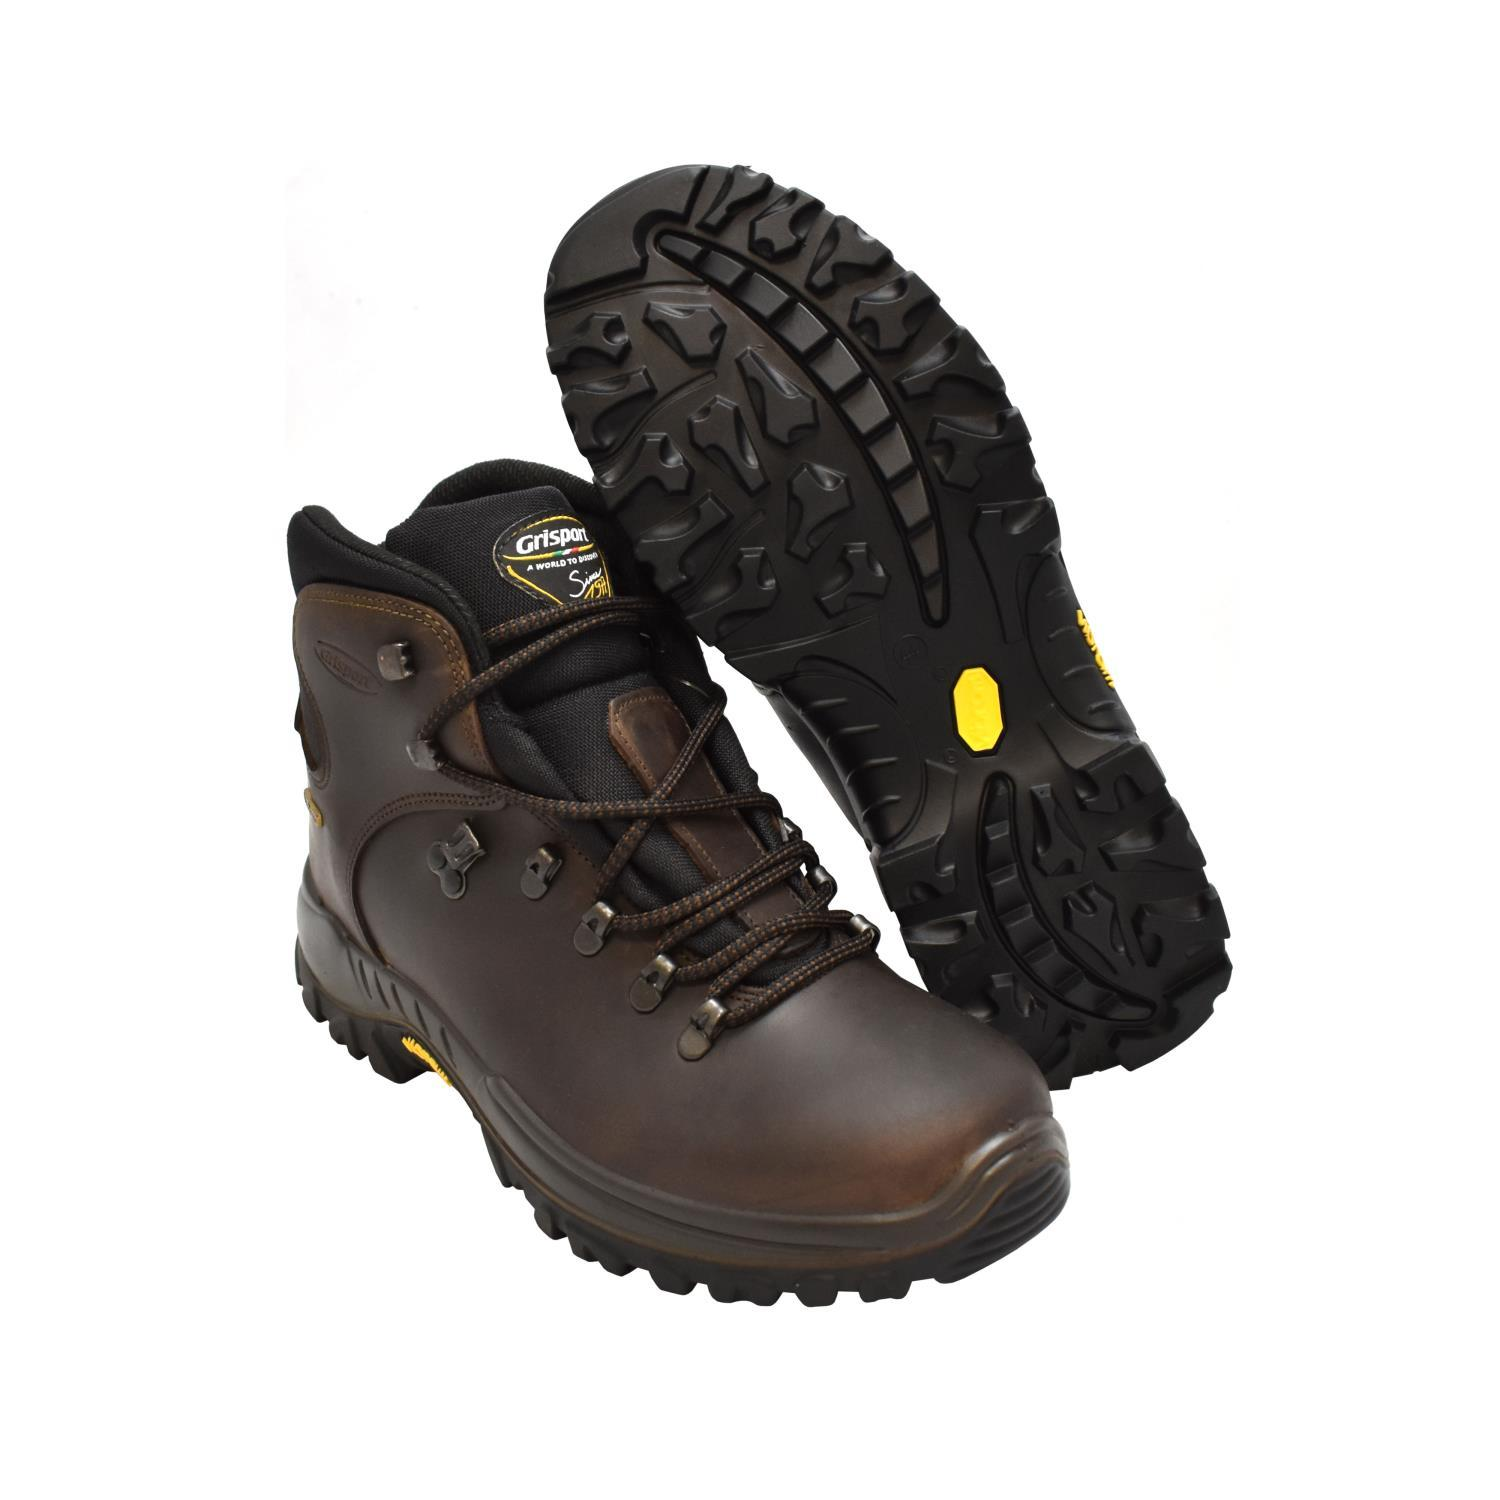 f23ace678fb Grisport Everest Waterproof Boot